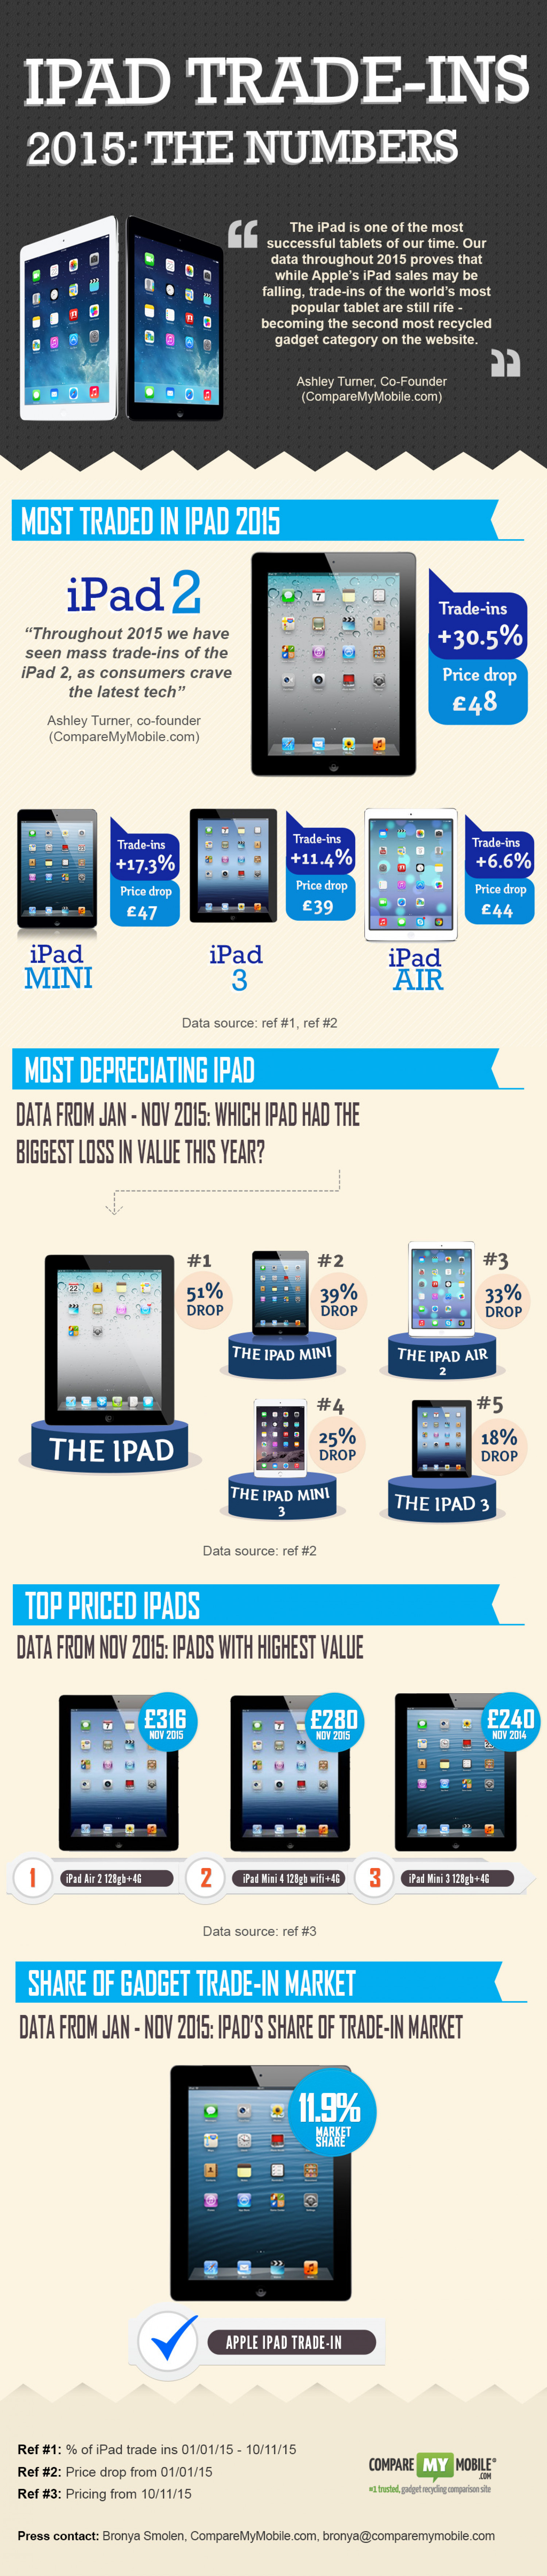 The iPad Trade-ins 2015  Infographic